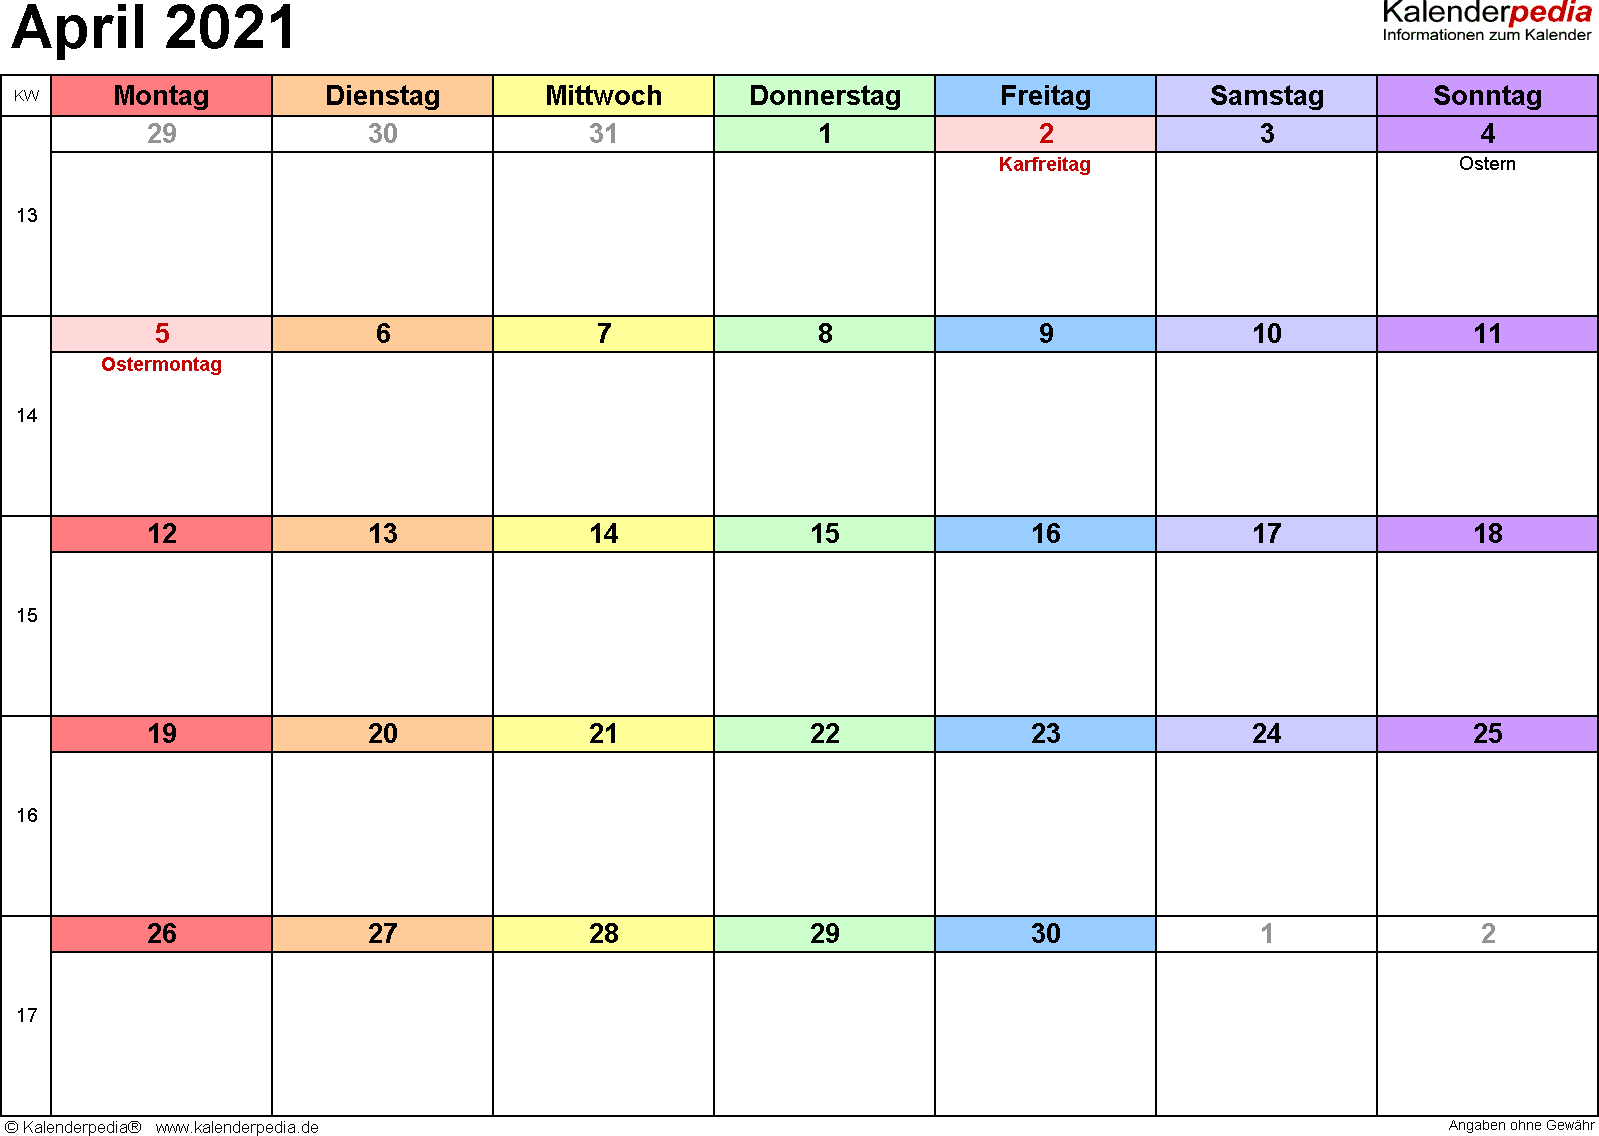 Kalender April 2021 (Querformat) als Word-Vorlage